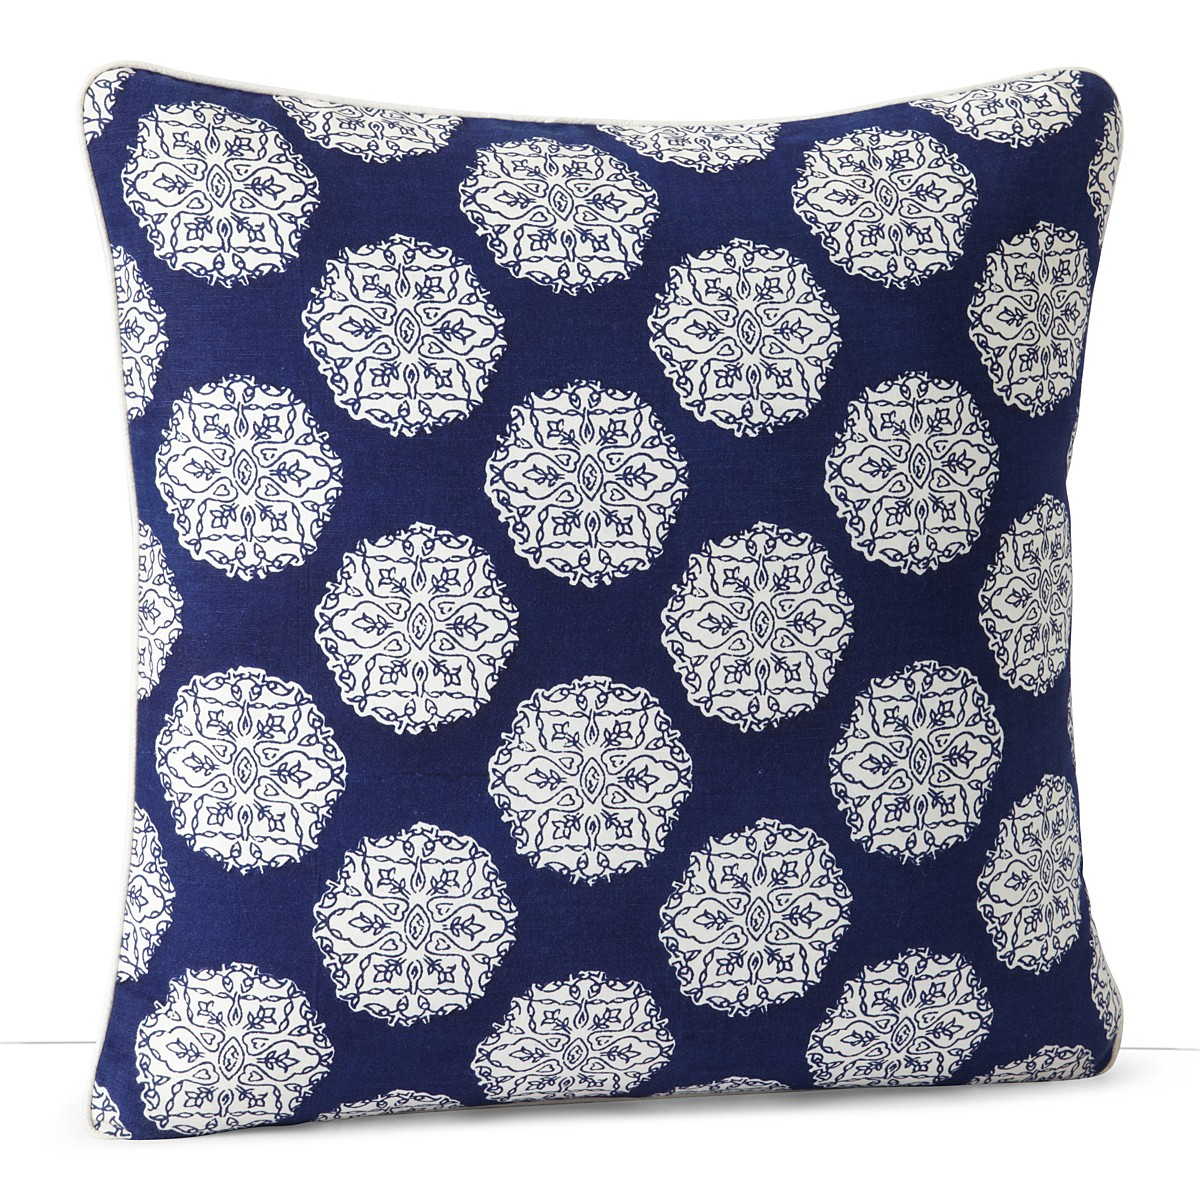 John Robshaw Pillows | John Robshaw Sheets | Pillow Shams Wiki